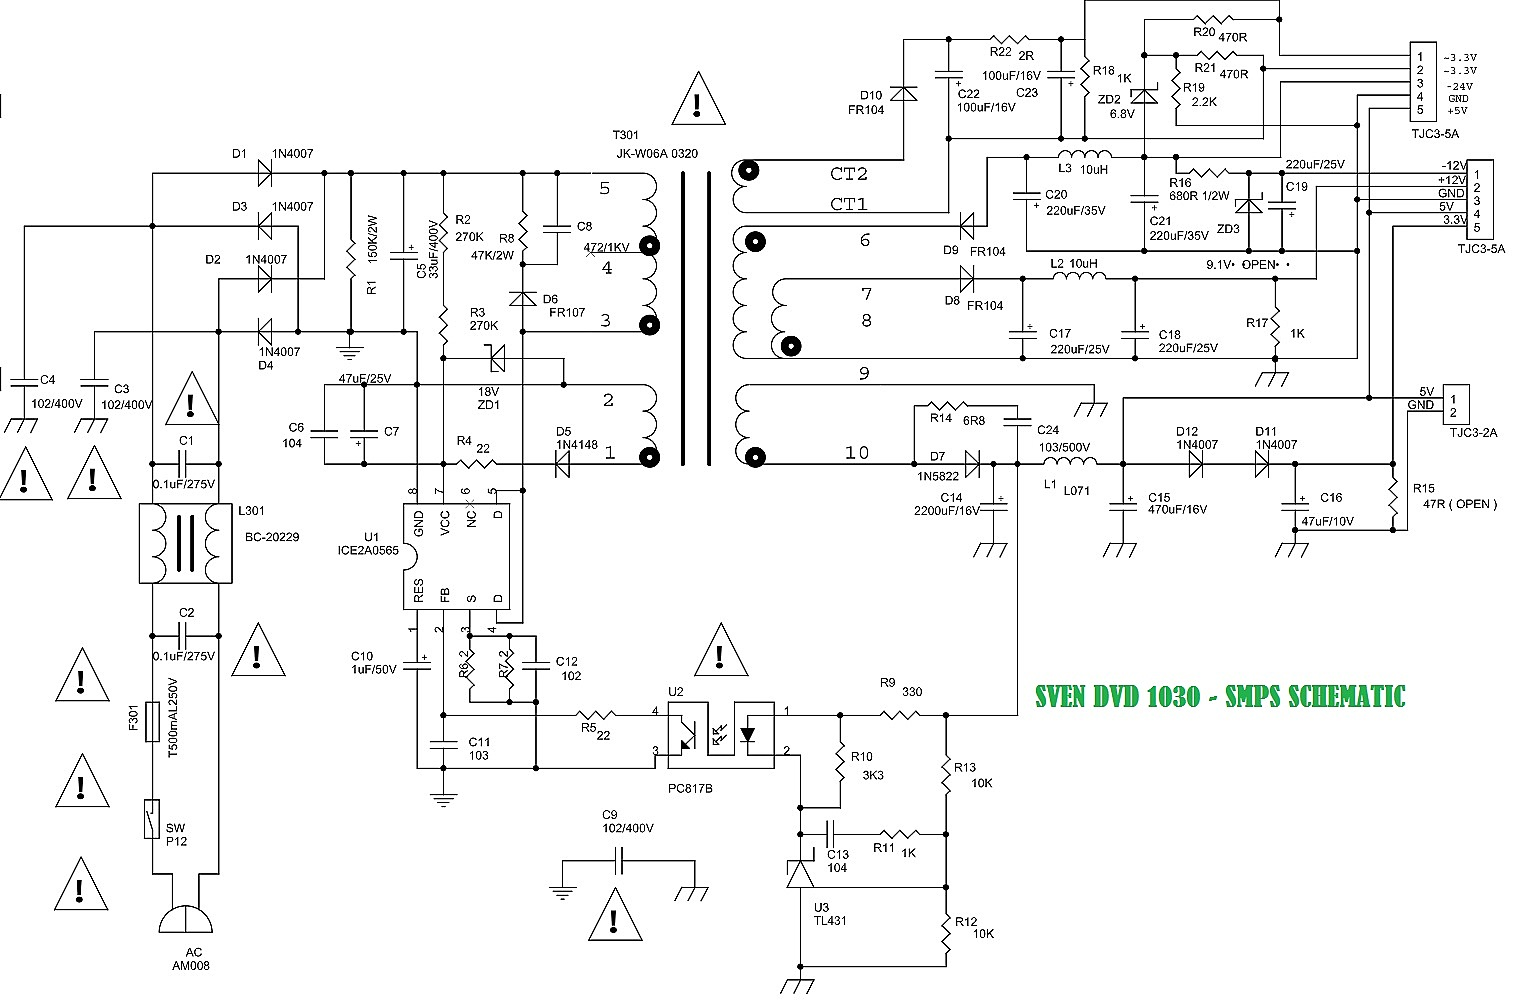 ht panel circuit diagram ht image wiring diagram dvd player circuit diagram the wiring diagram on ht panel circuit diagram